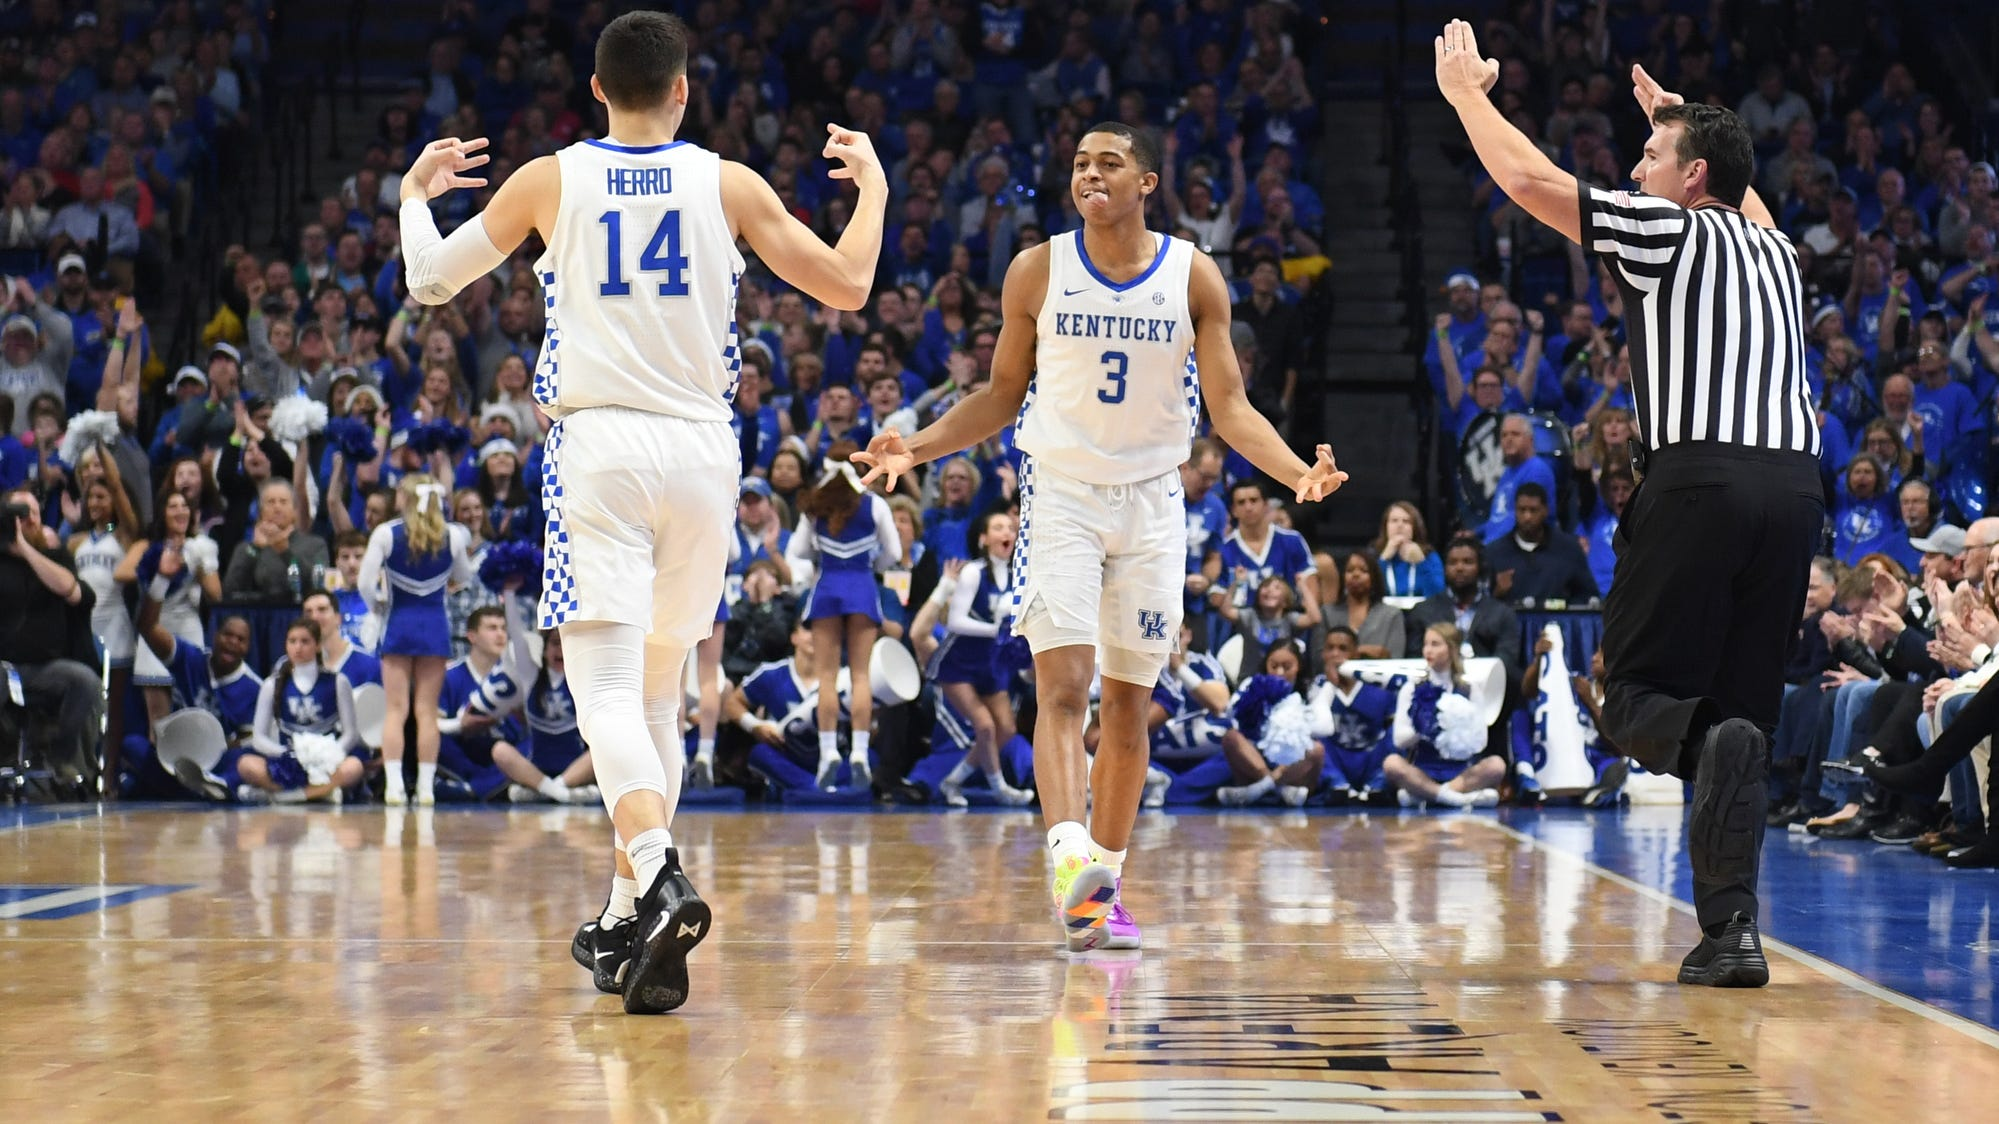 UK guard Tyler Herro and guard Keldon Johnson celebrate during the University of Kentucky men's basketball game against Utah at Rupp Arena in Lexington, Kentucky, on Saturday, Dec. 15, 2018.